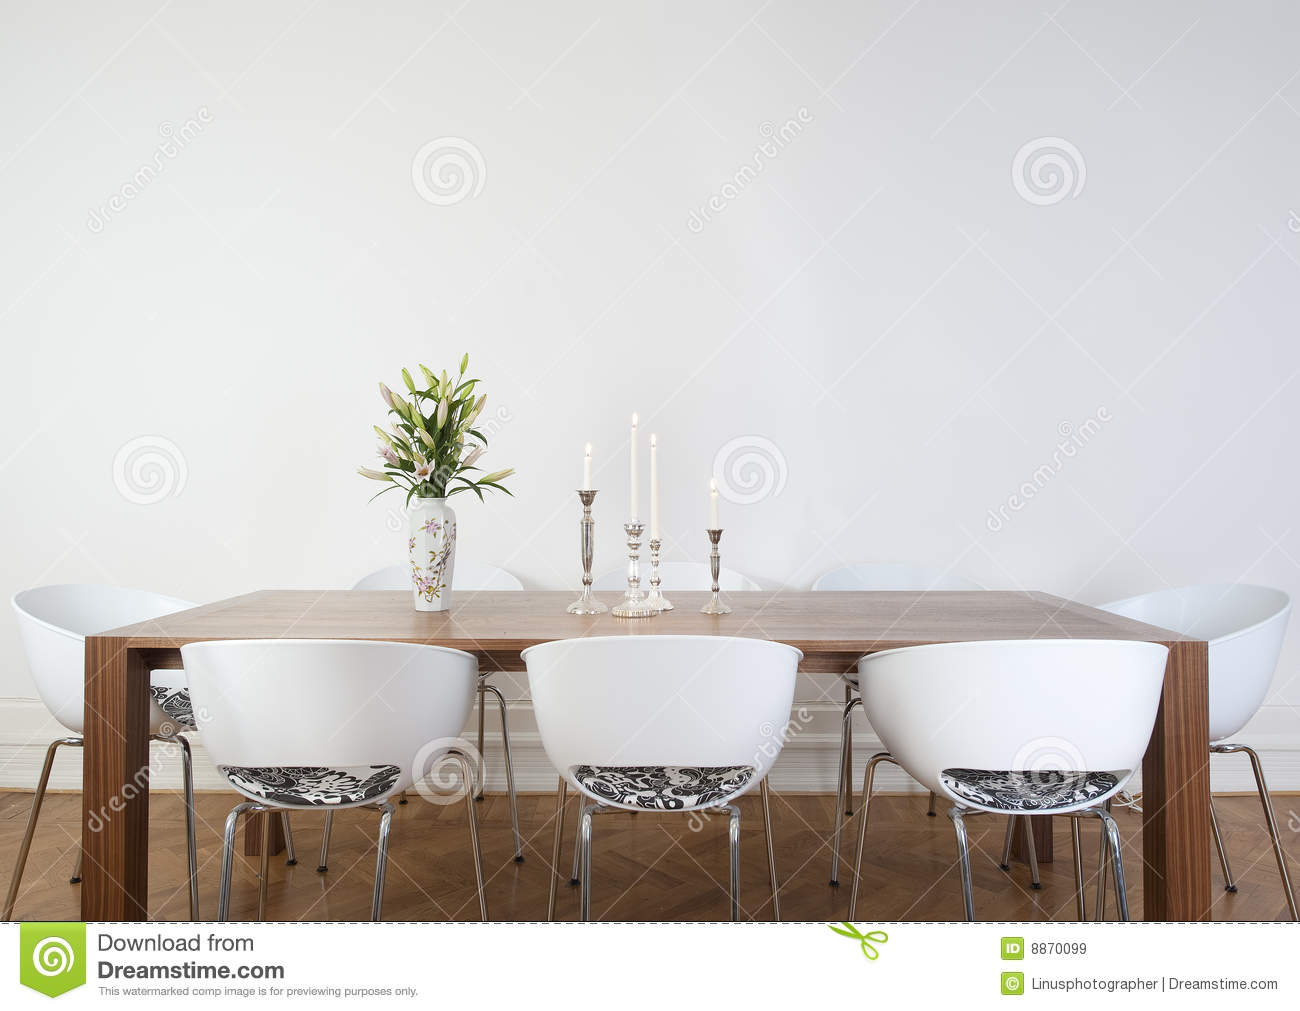 https://thumbs.dreamstime.com/z/moderne-eetkamer-8870099.jpg